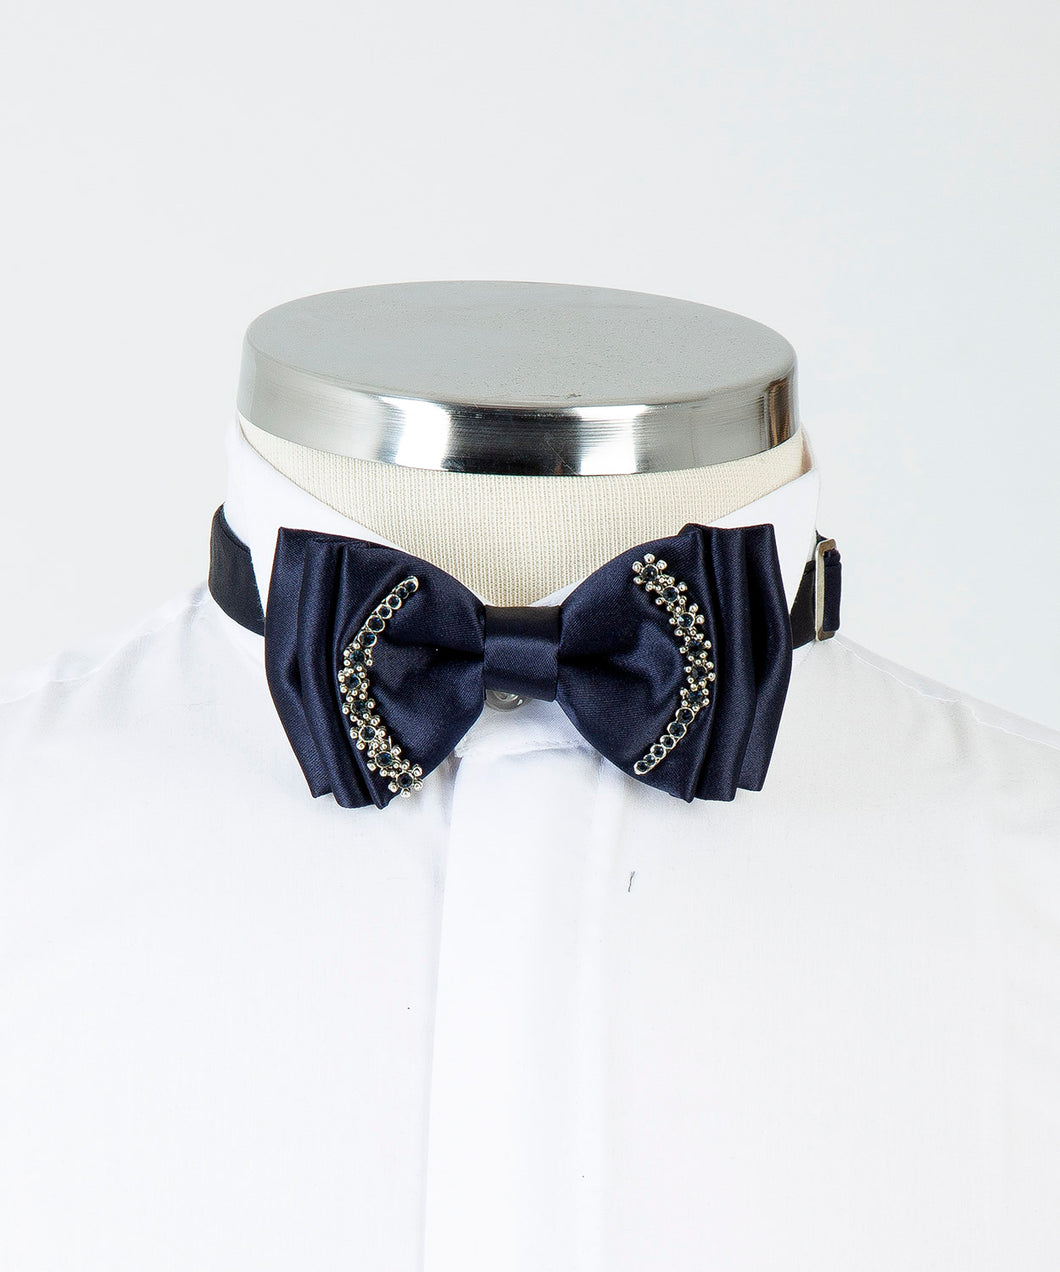 Ornamental Bow Tie - Navy Blue